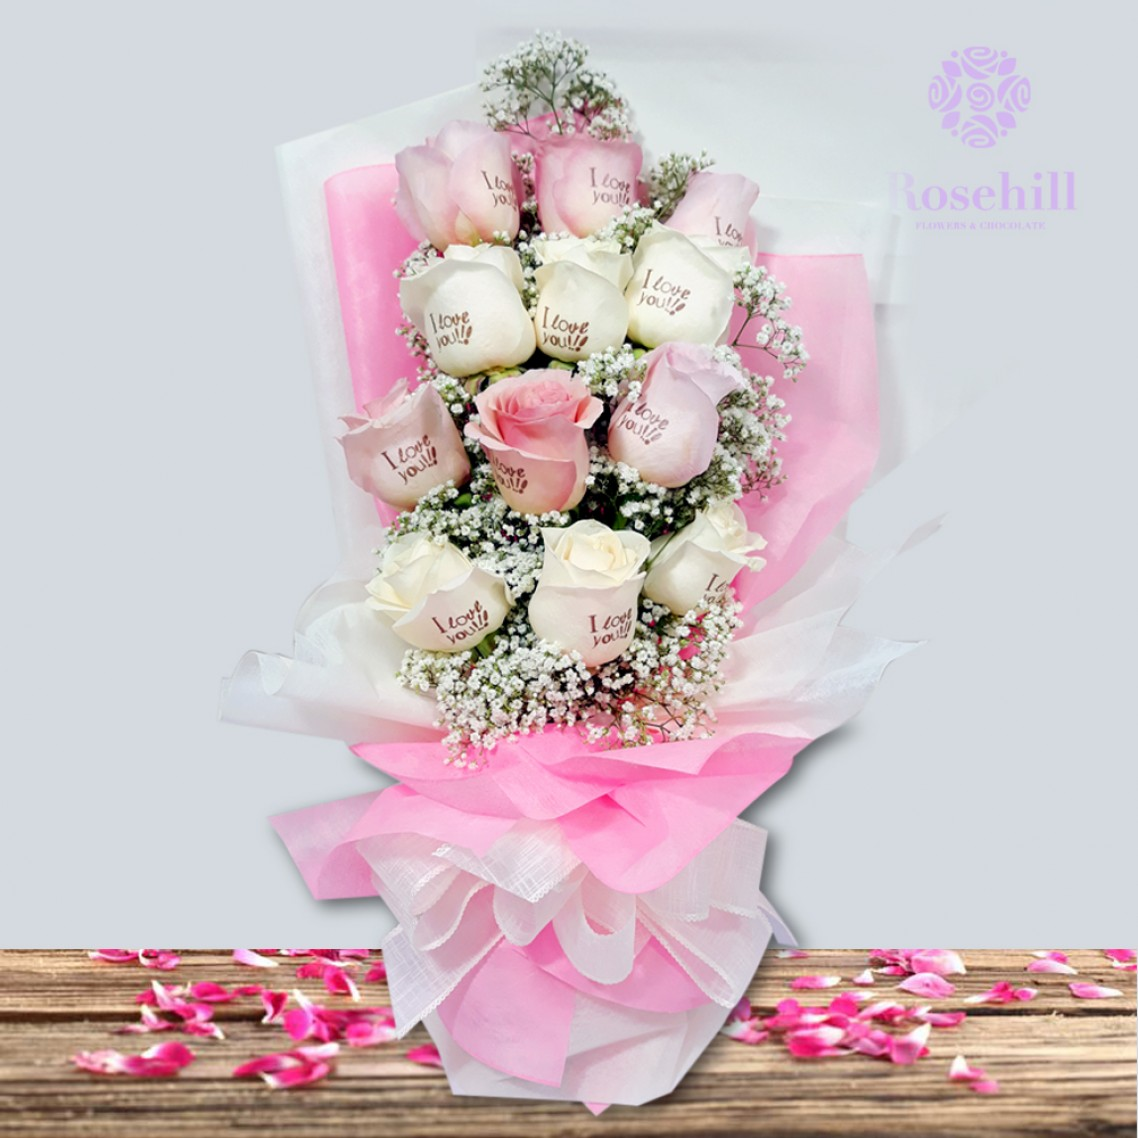 1524673949-h-250-_Rosehill's I Love You Bouquet with Babys Breath- Pink and White.jpg